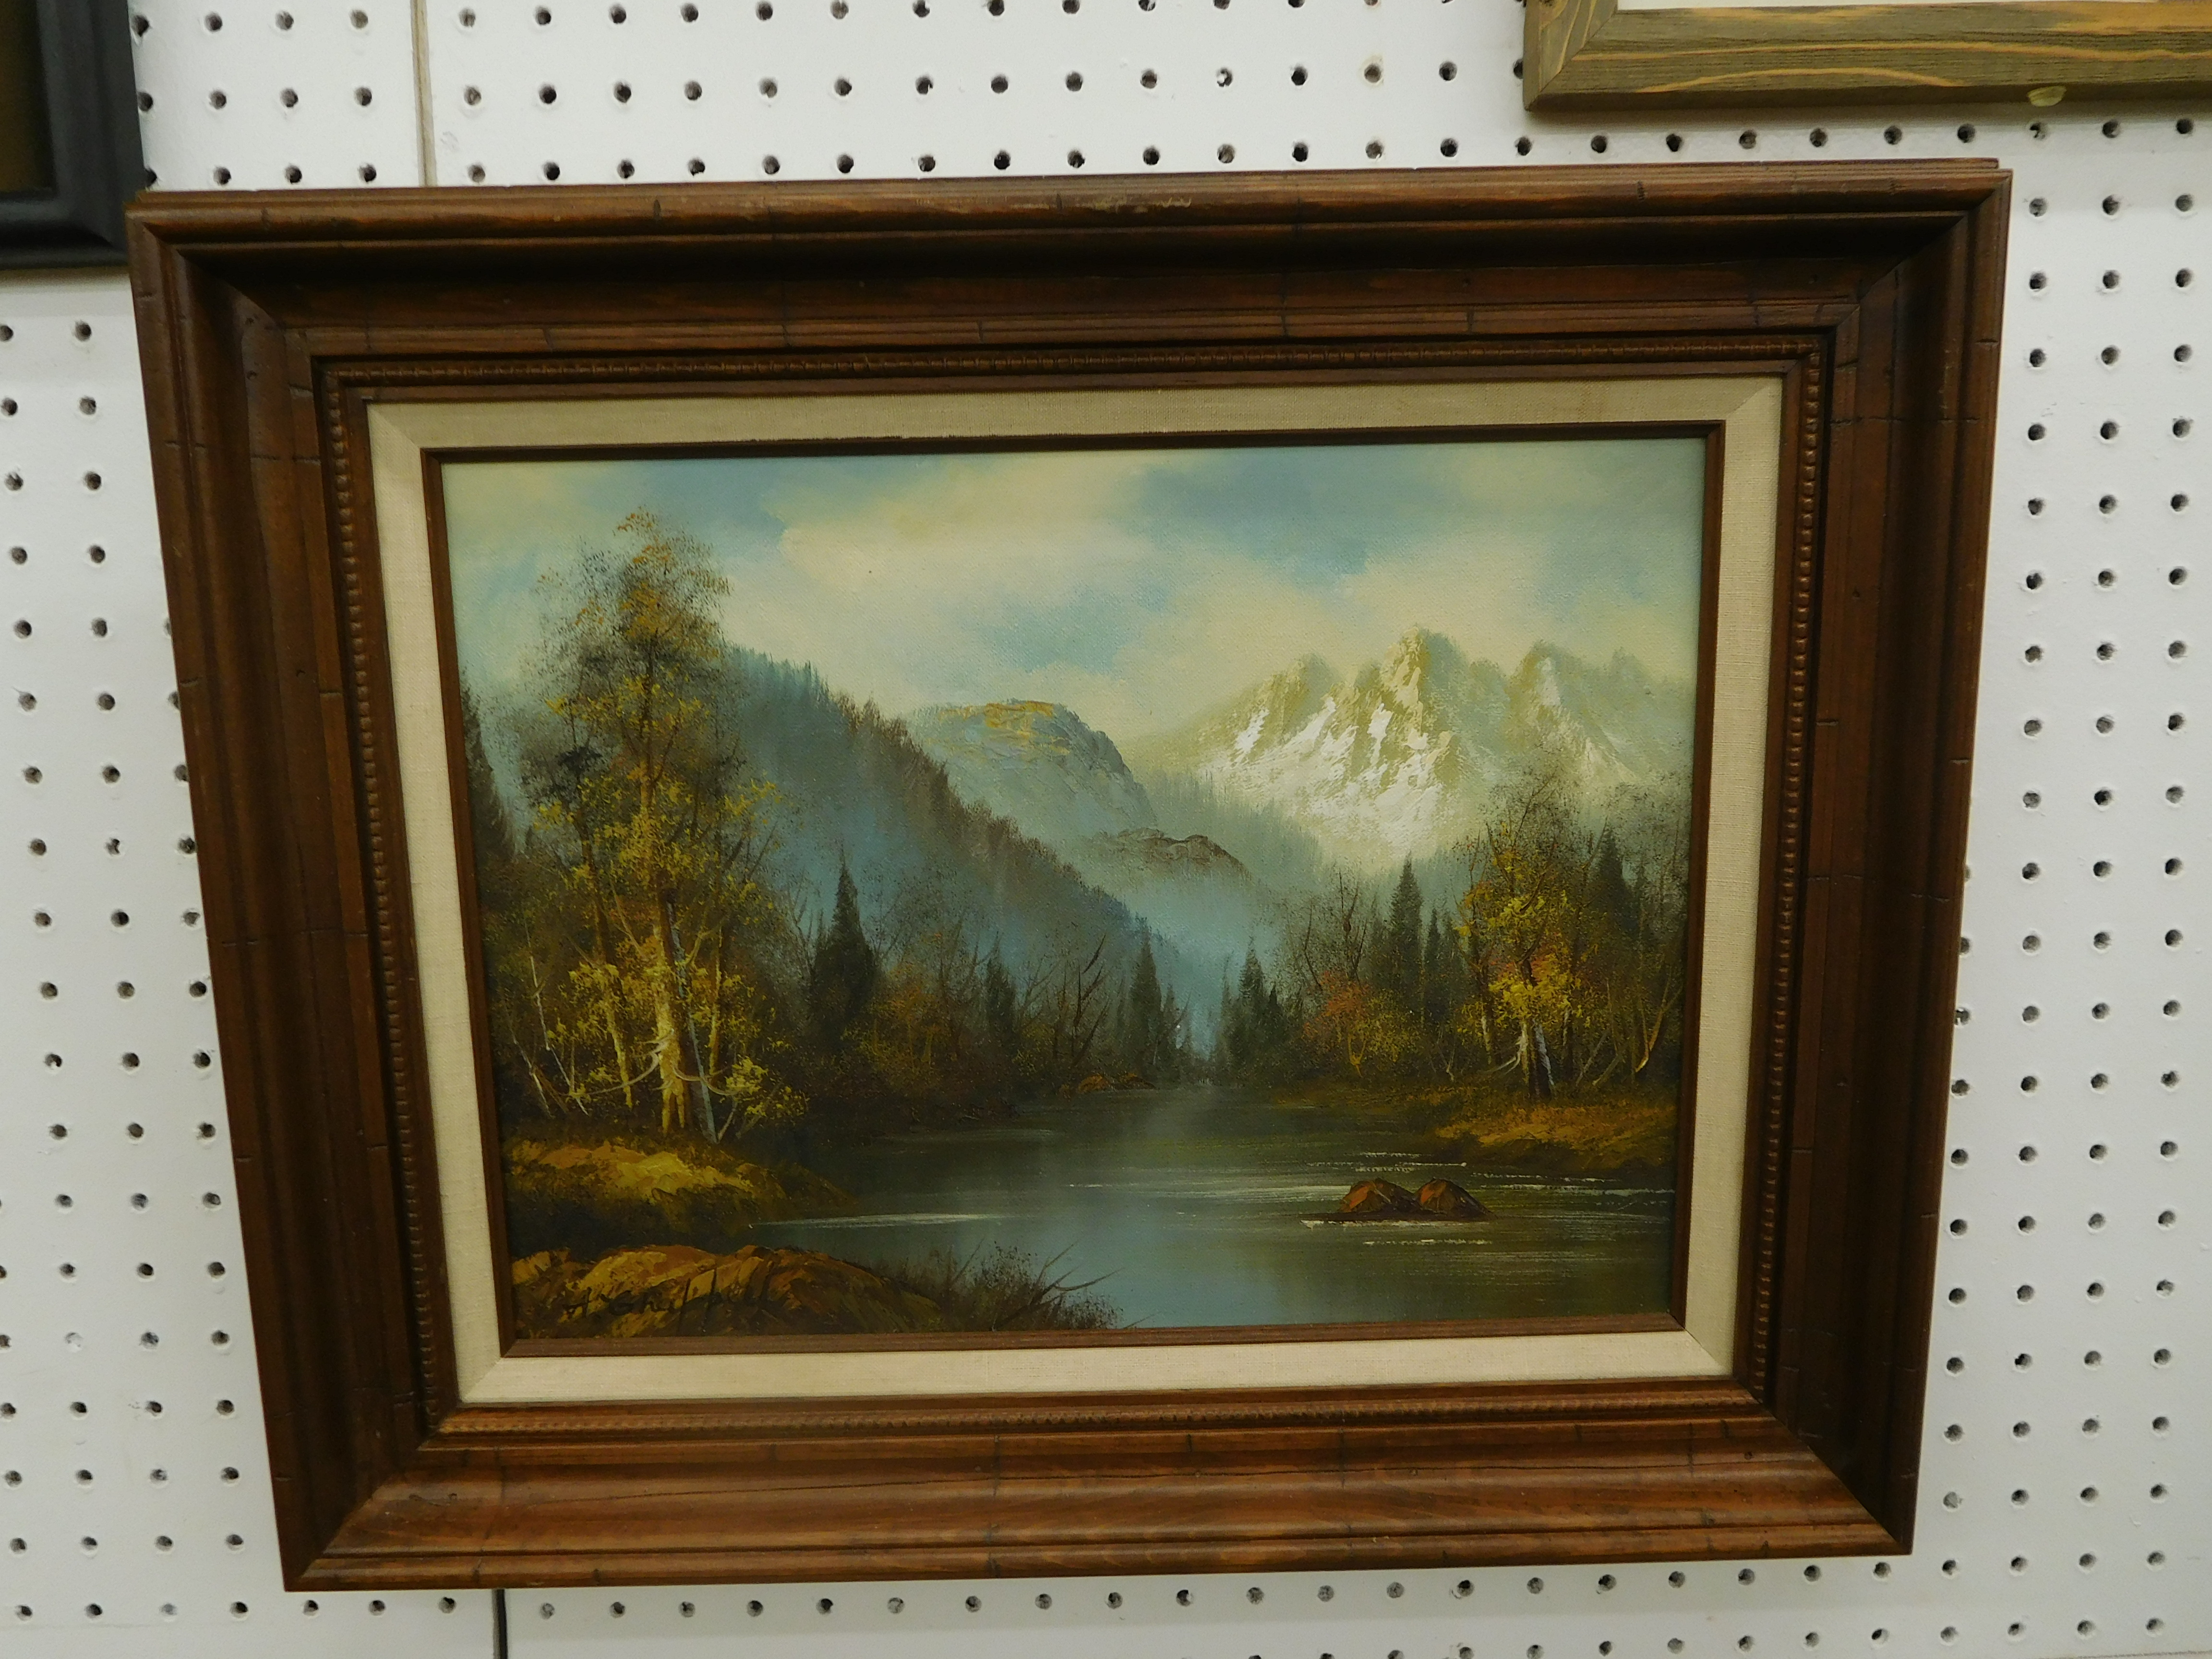 Oil On Canvas Painting of Mountains, River and Sky - by Bell